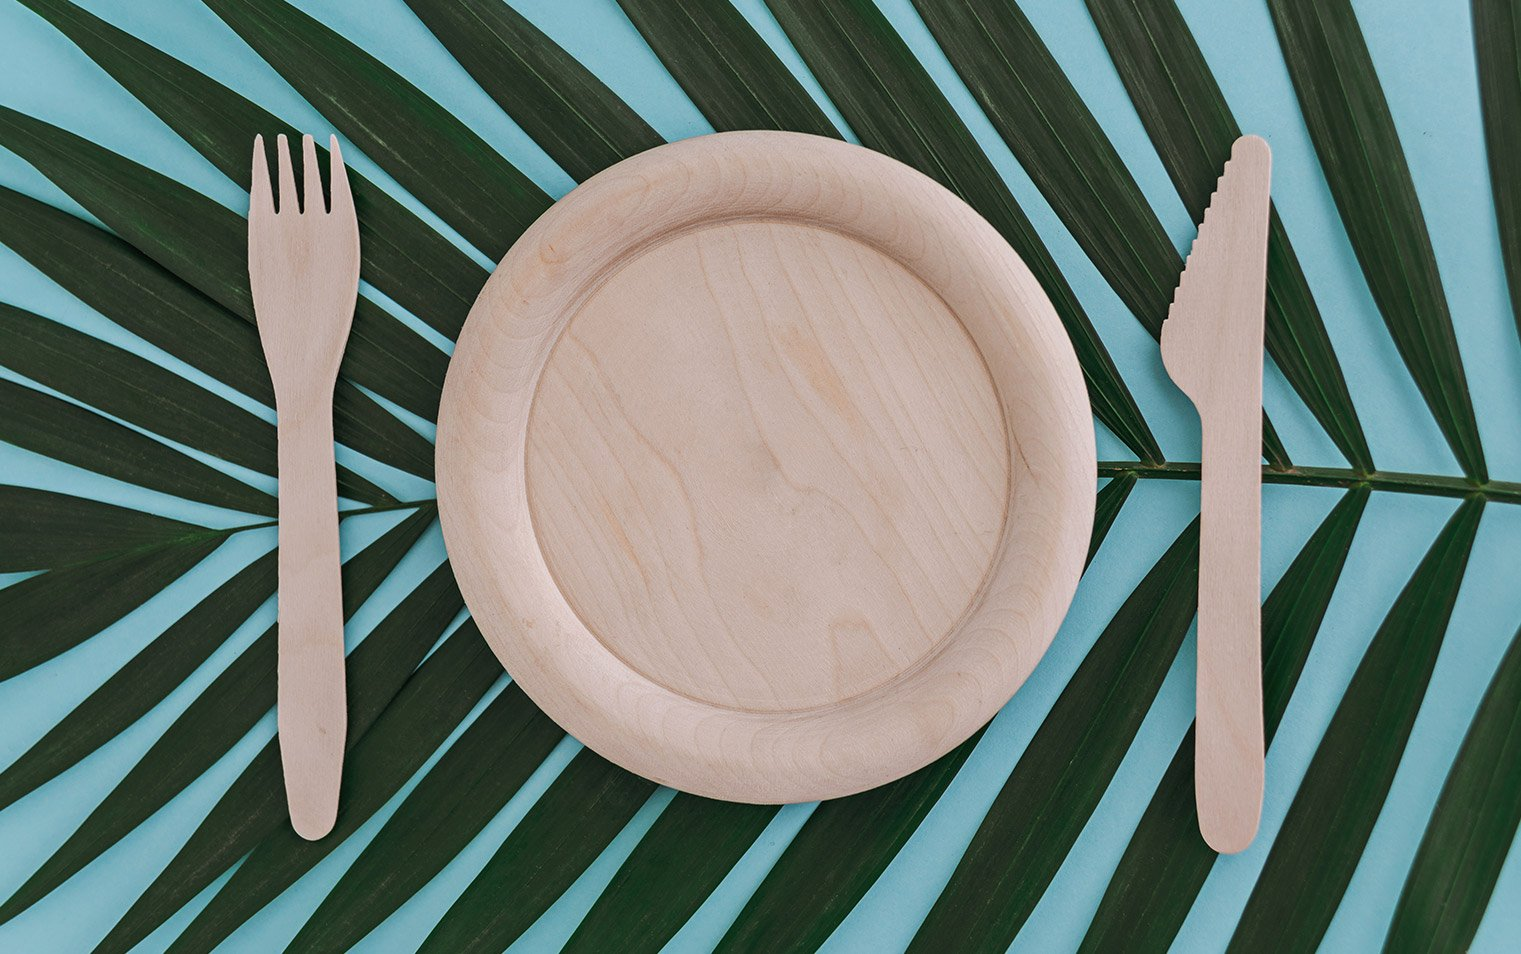 Disposable cutlery and plate made of bamboo